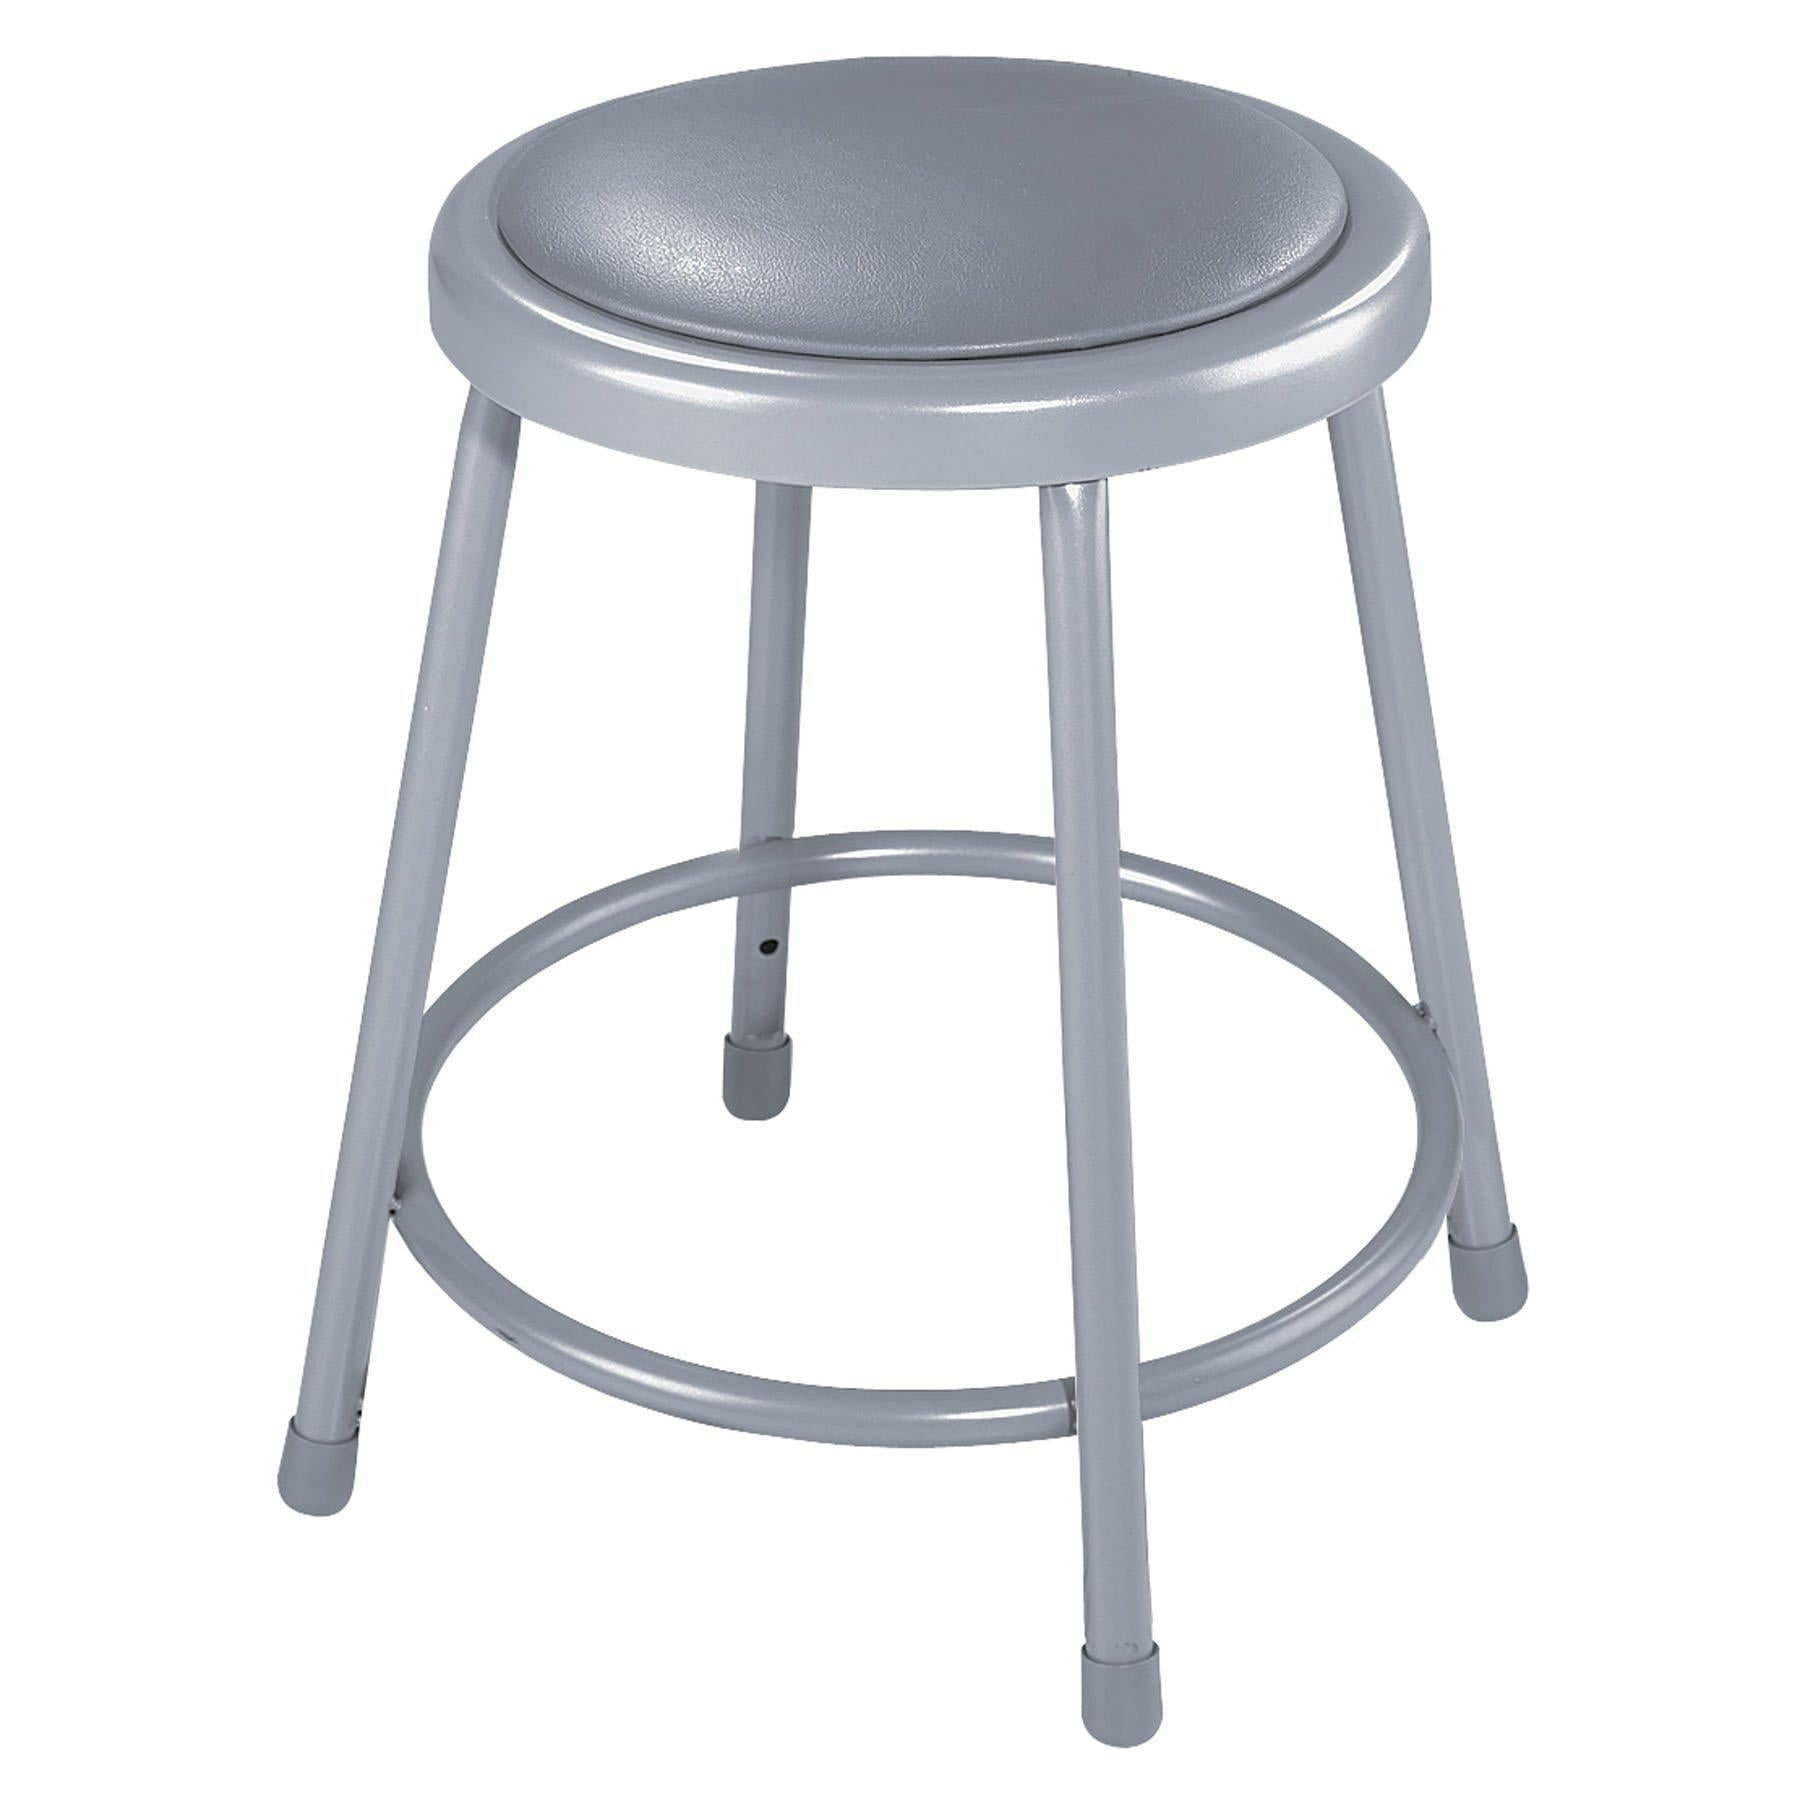 "Heavy Duty Vinyl Padded Steel Stool, Grey-Stools-18""-"